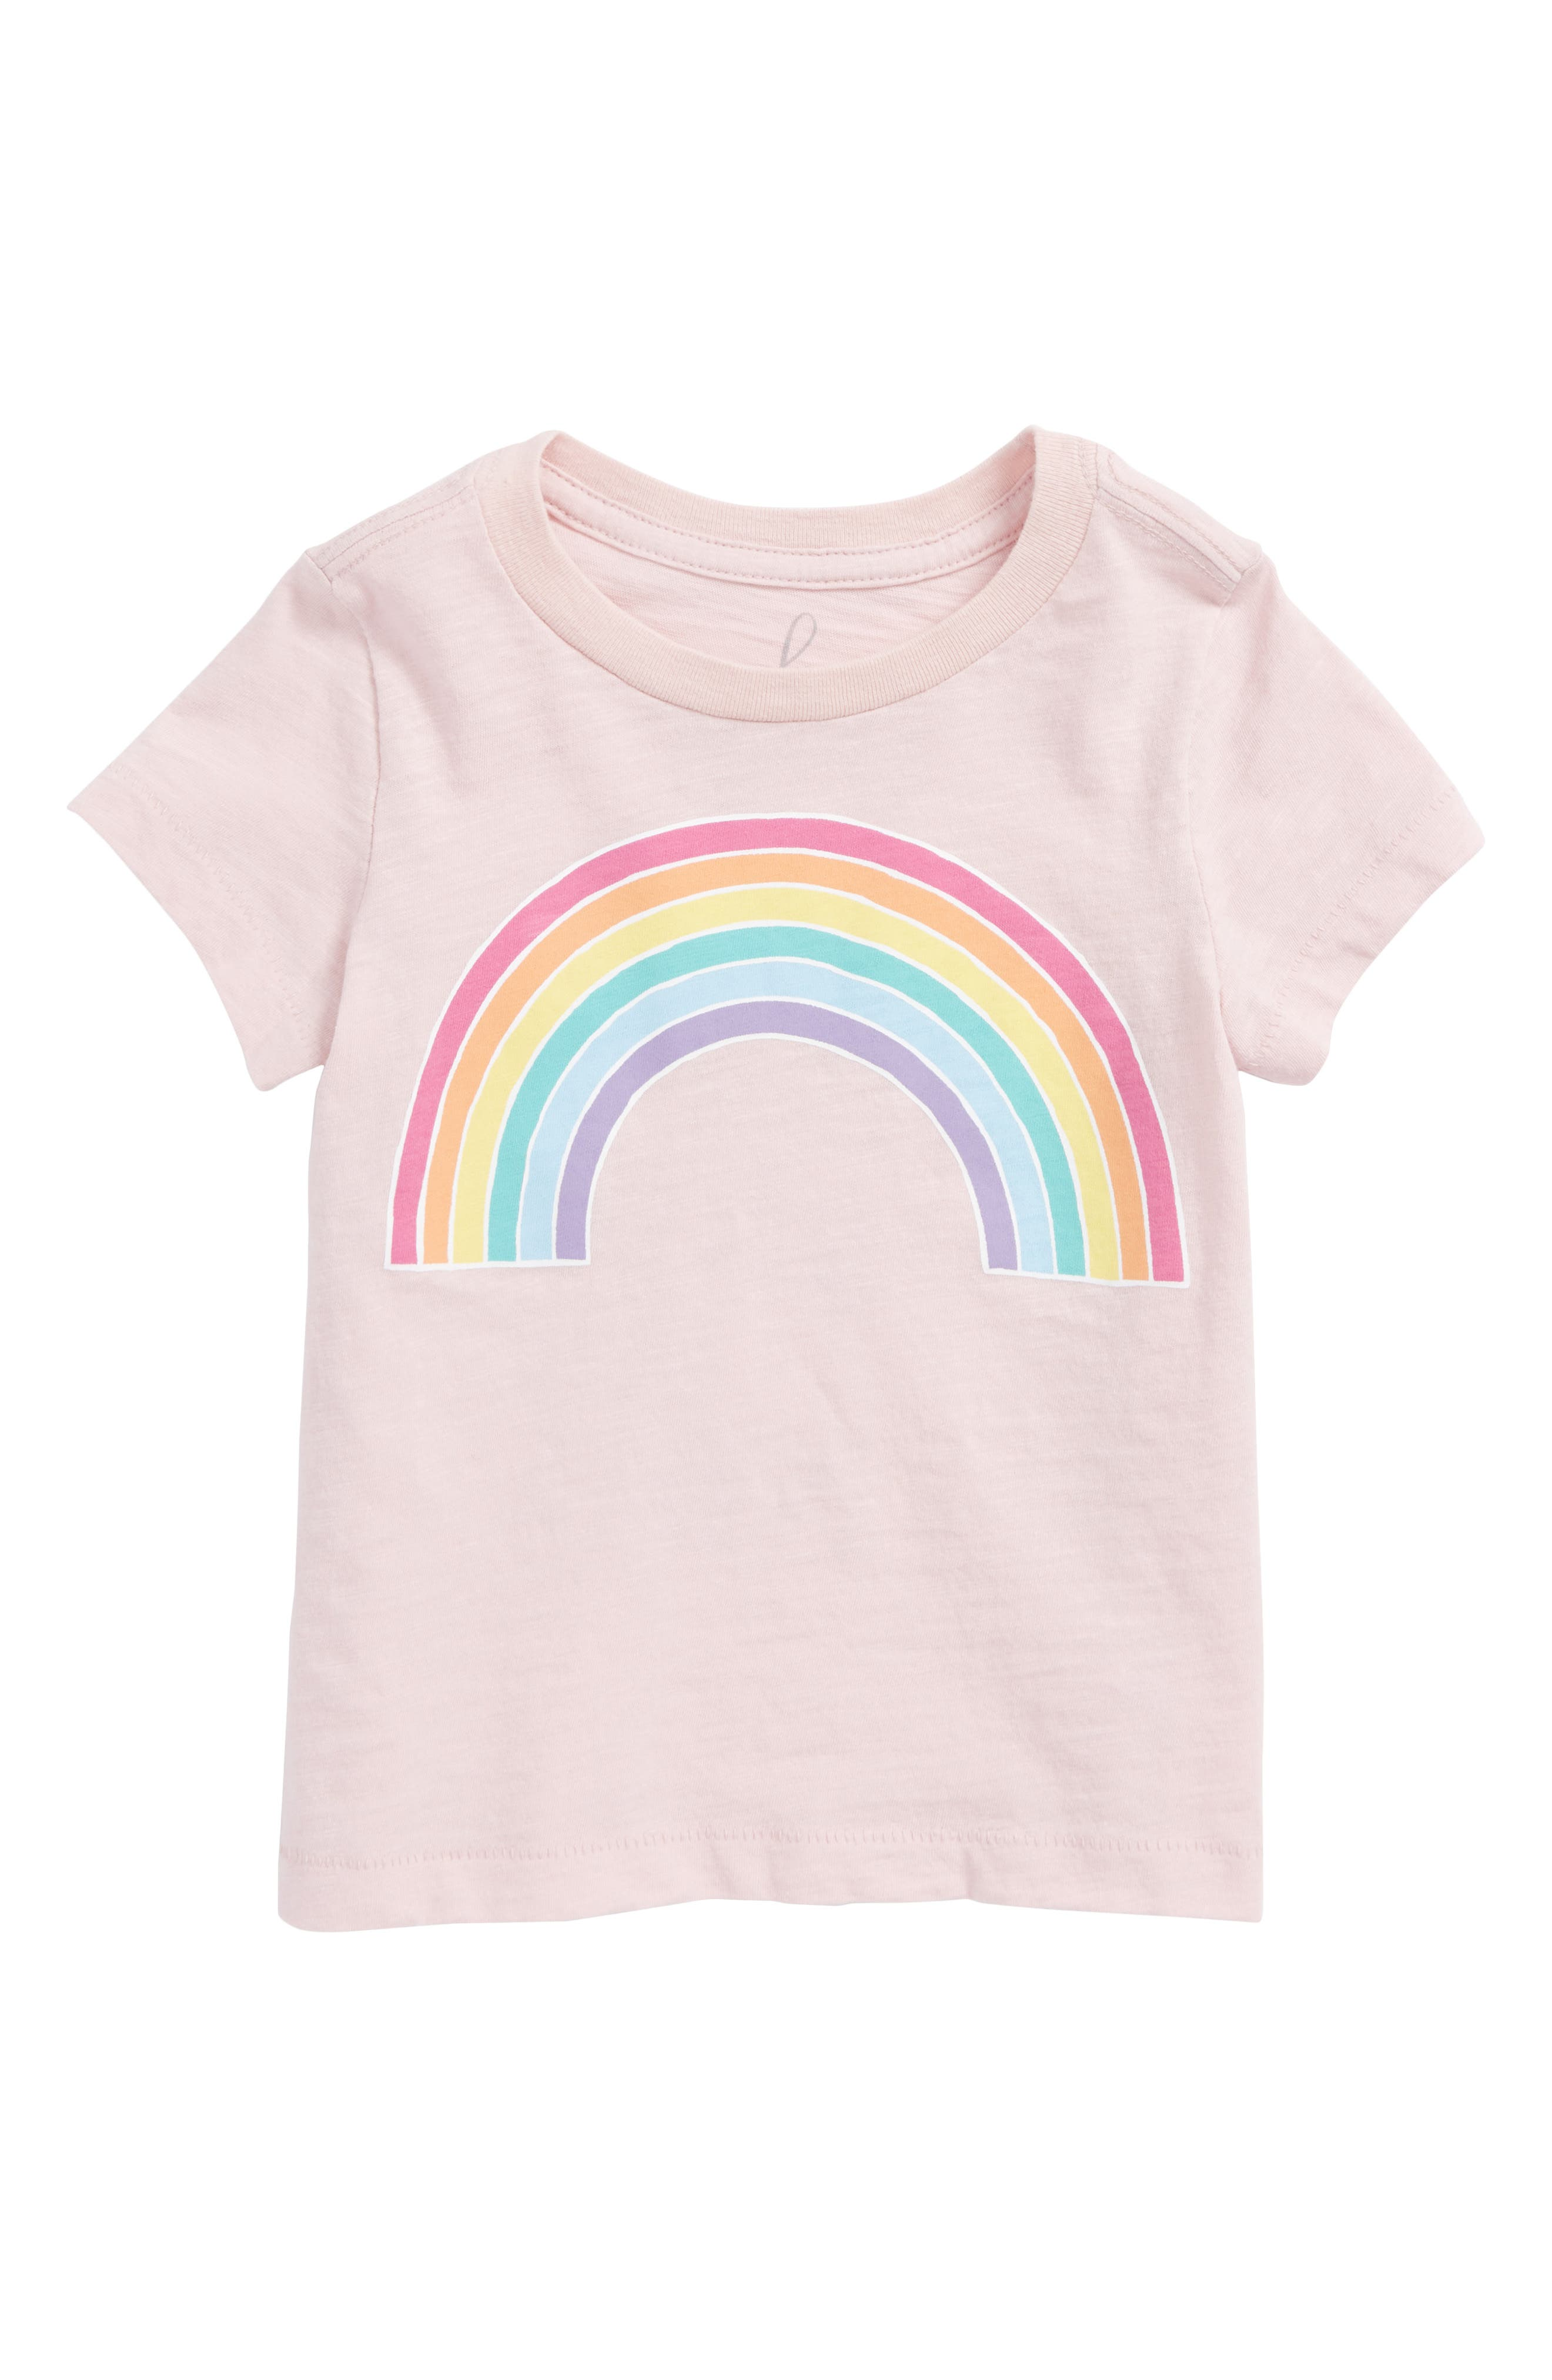 Rainbow Graphic Tee,                         Main,                         color, Light Pink